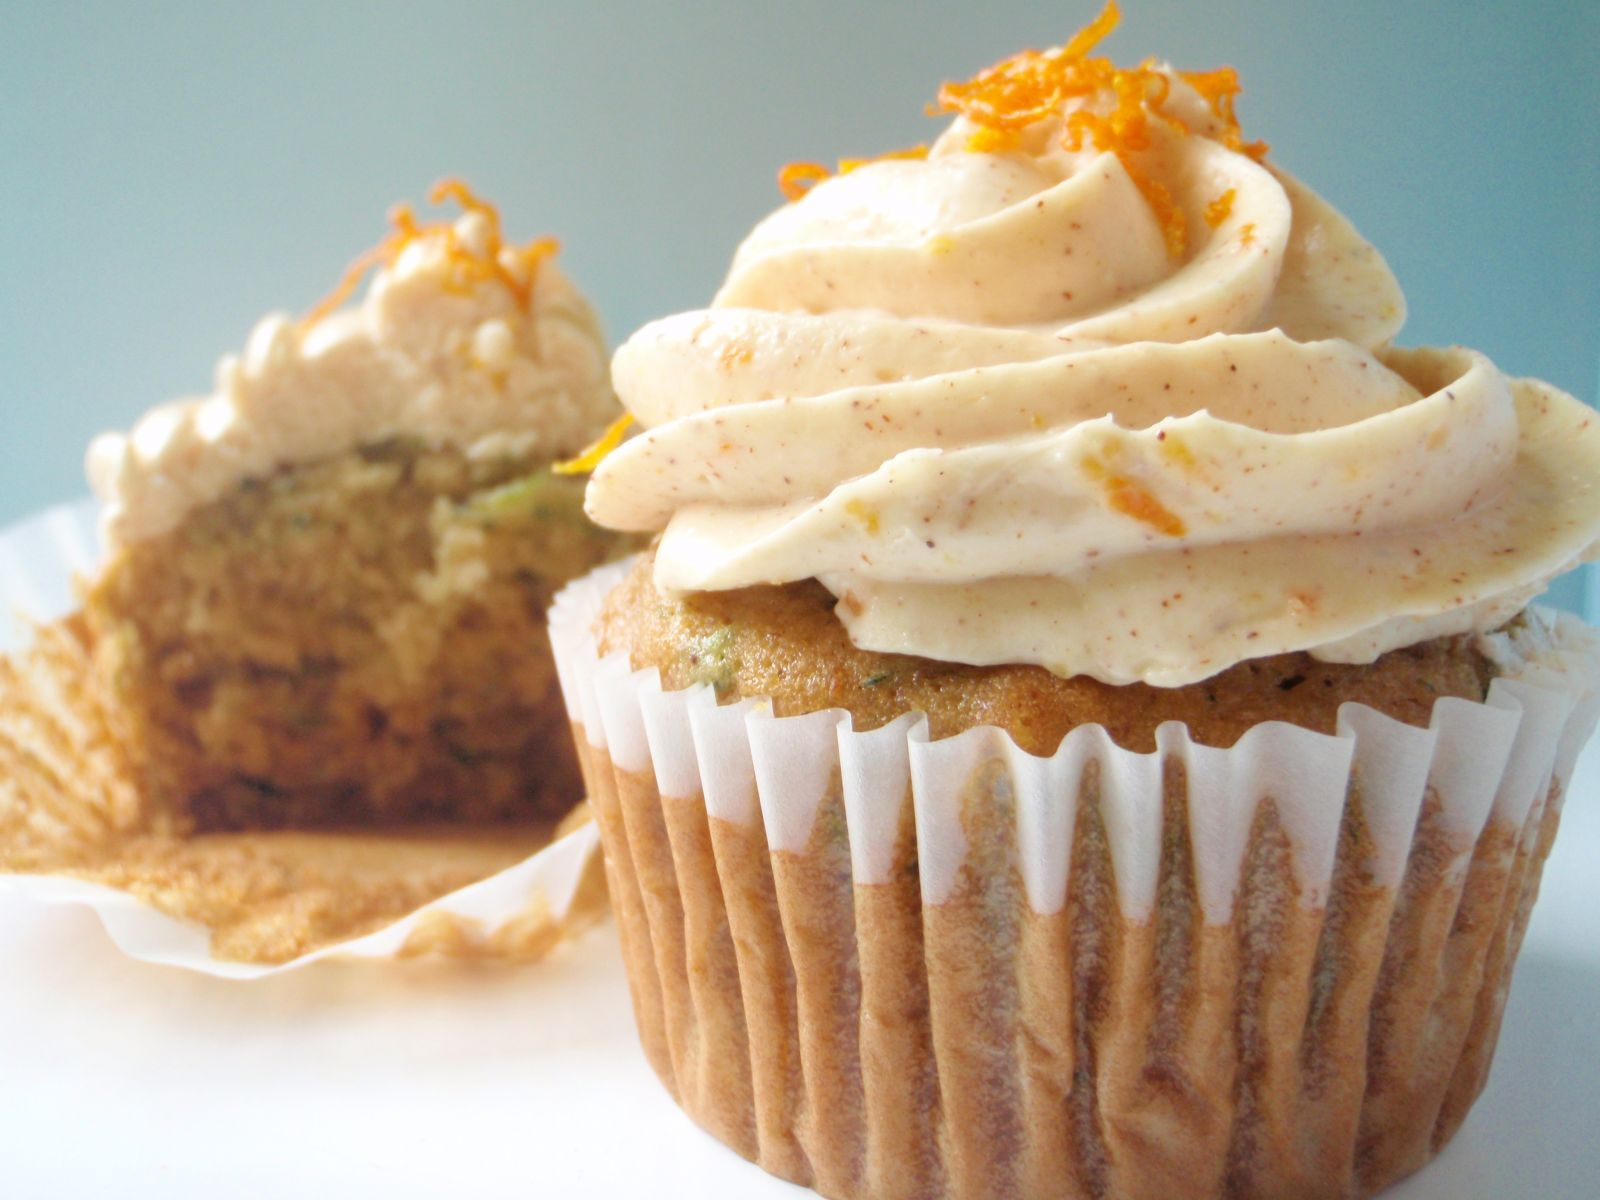 Zucchini Cupcakes With Orange-Spiced Cream Cheese Frosting